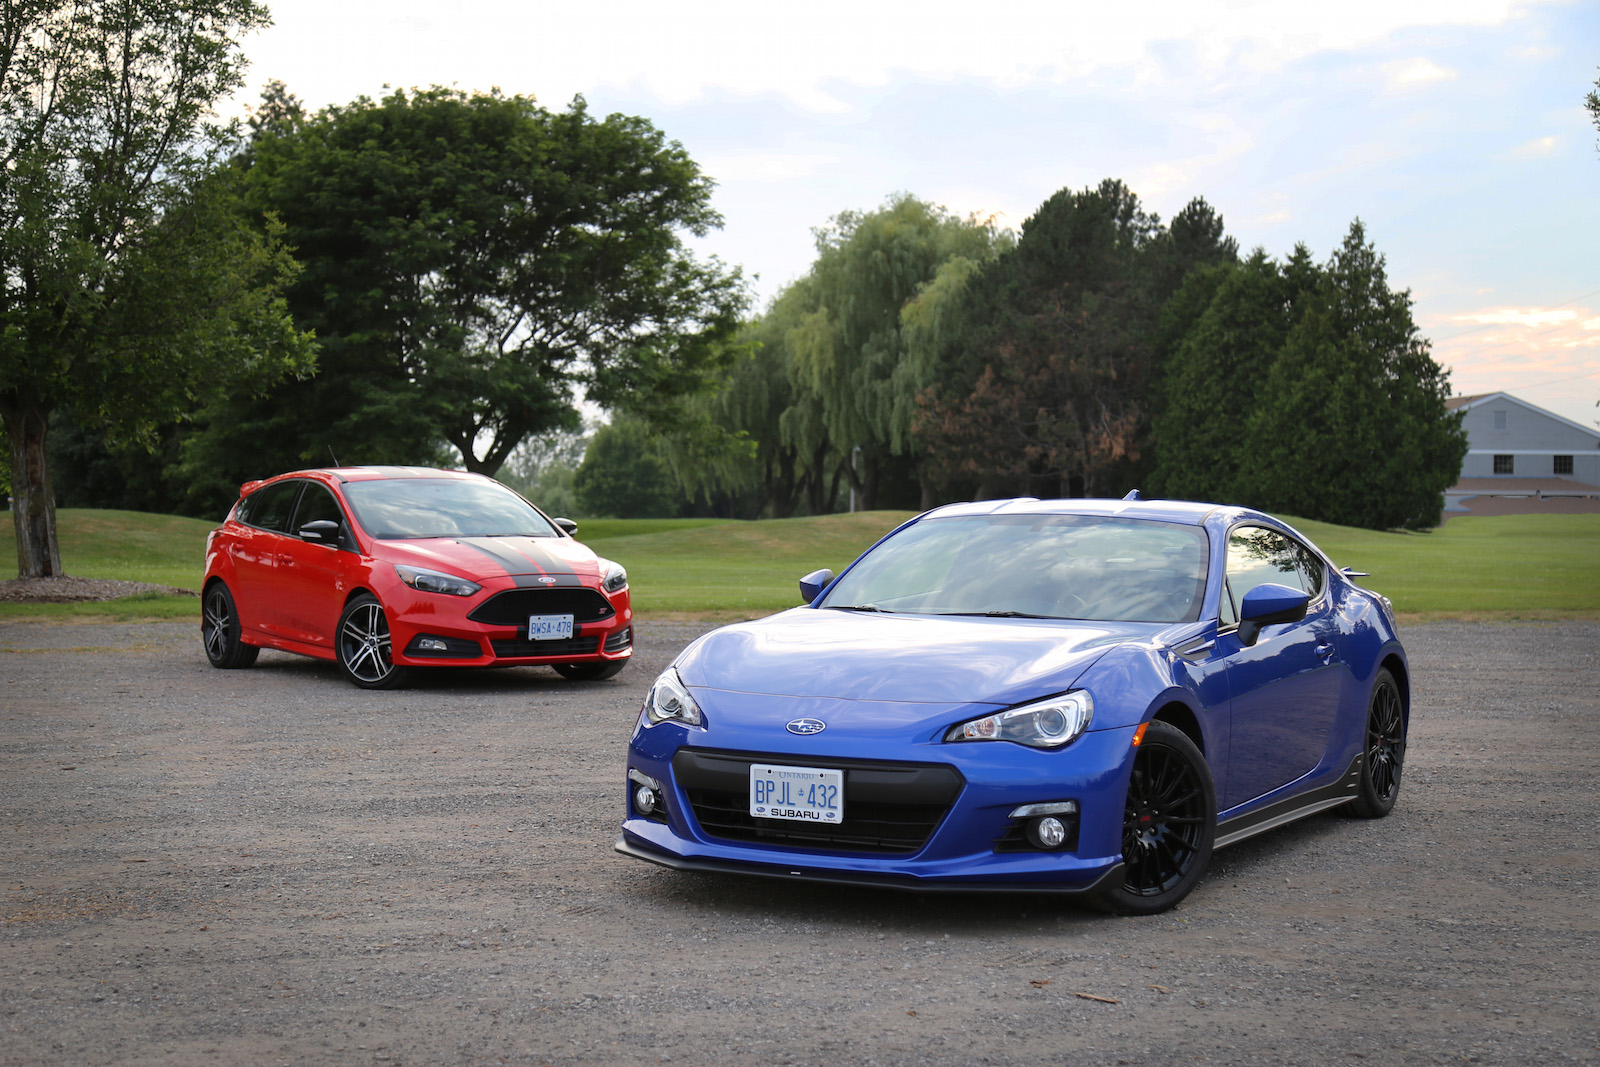 Brz vs focus st review